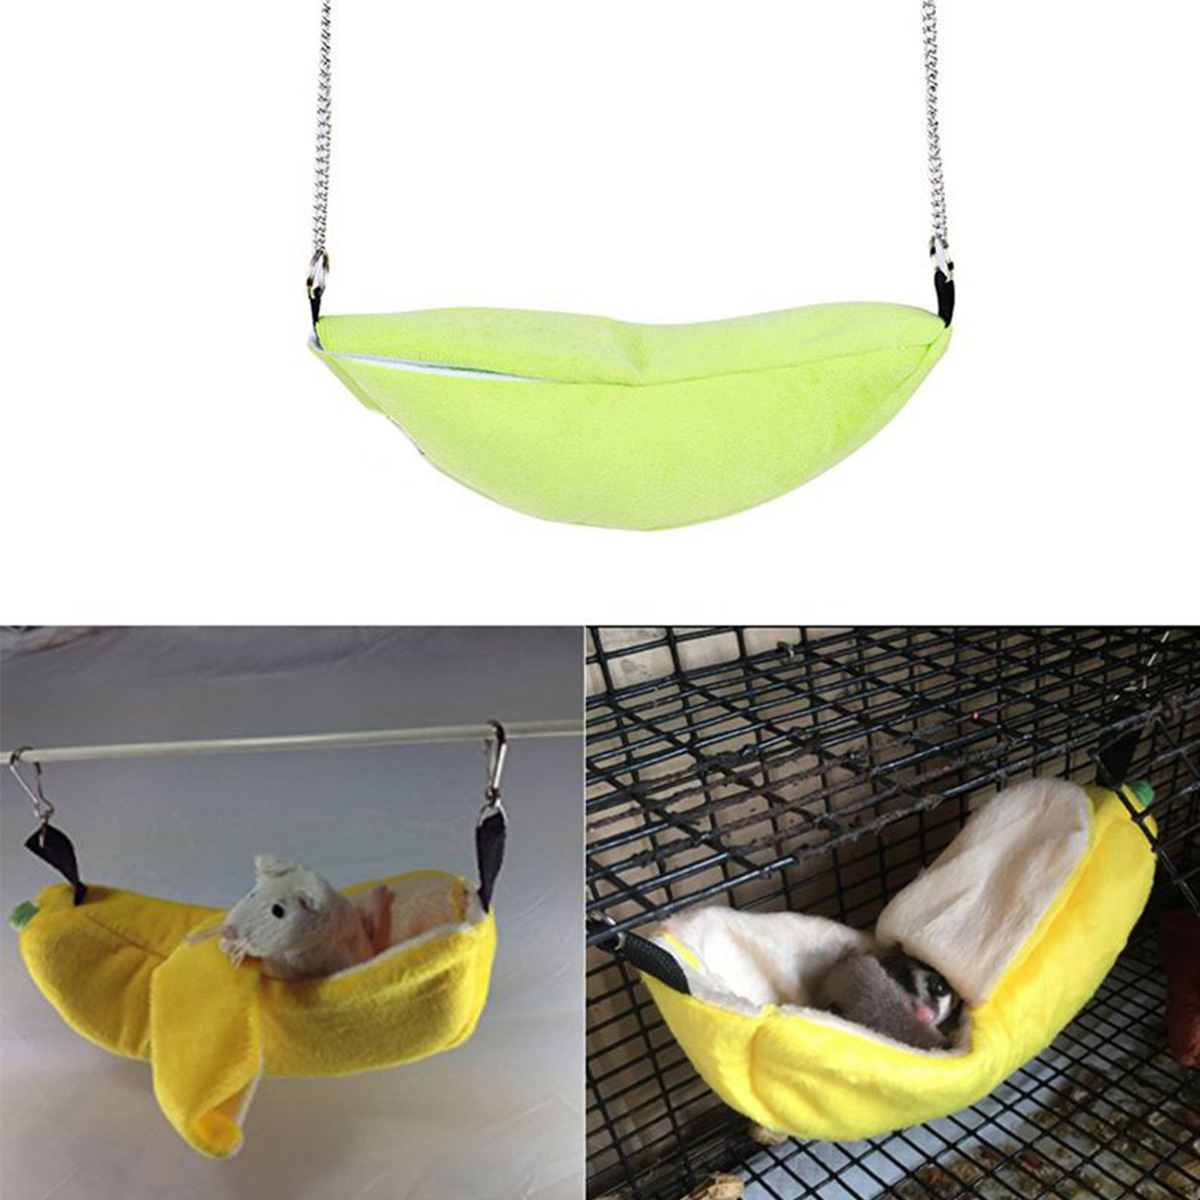 Banana Hamster Bed House Hammock Small Animal Bed House Cage Nest Hamster Accessories For Hamster Small